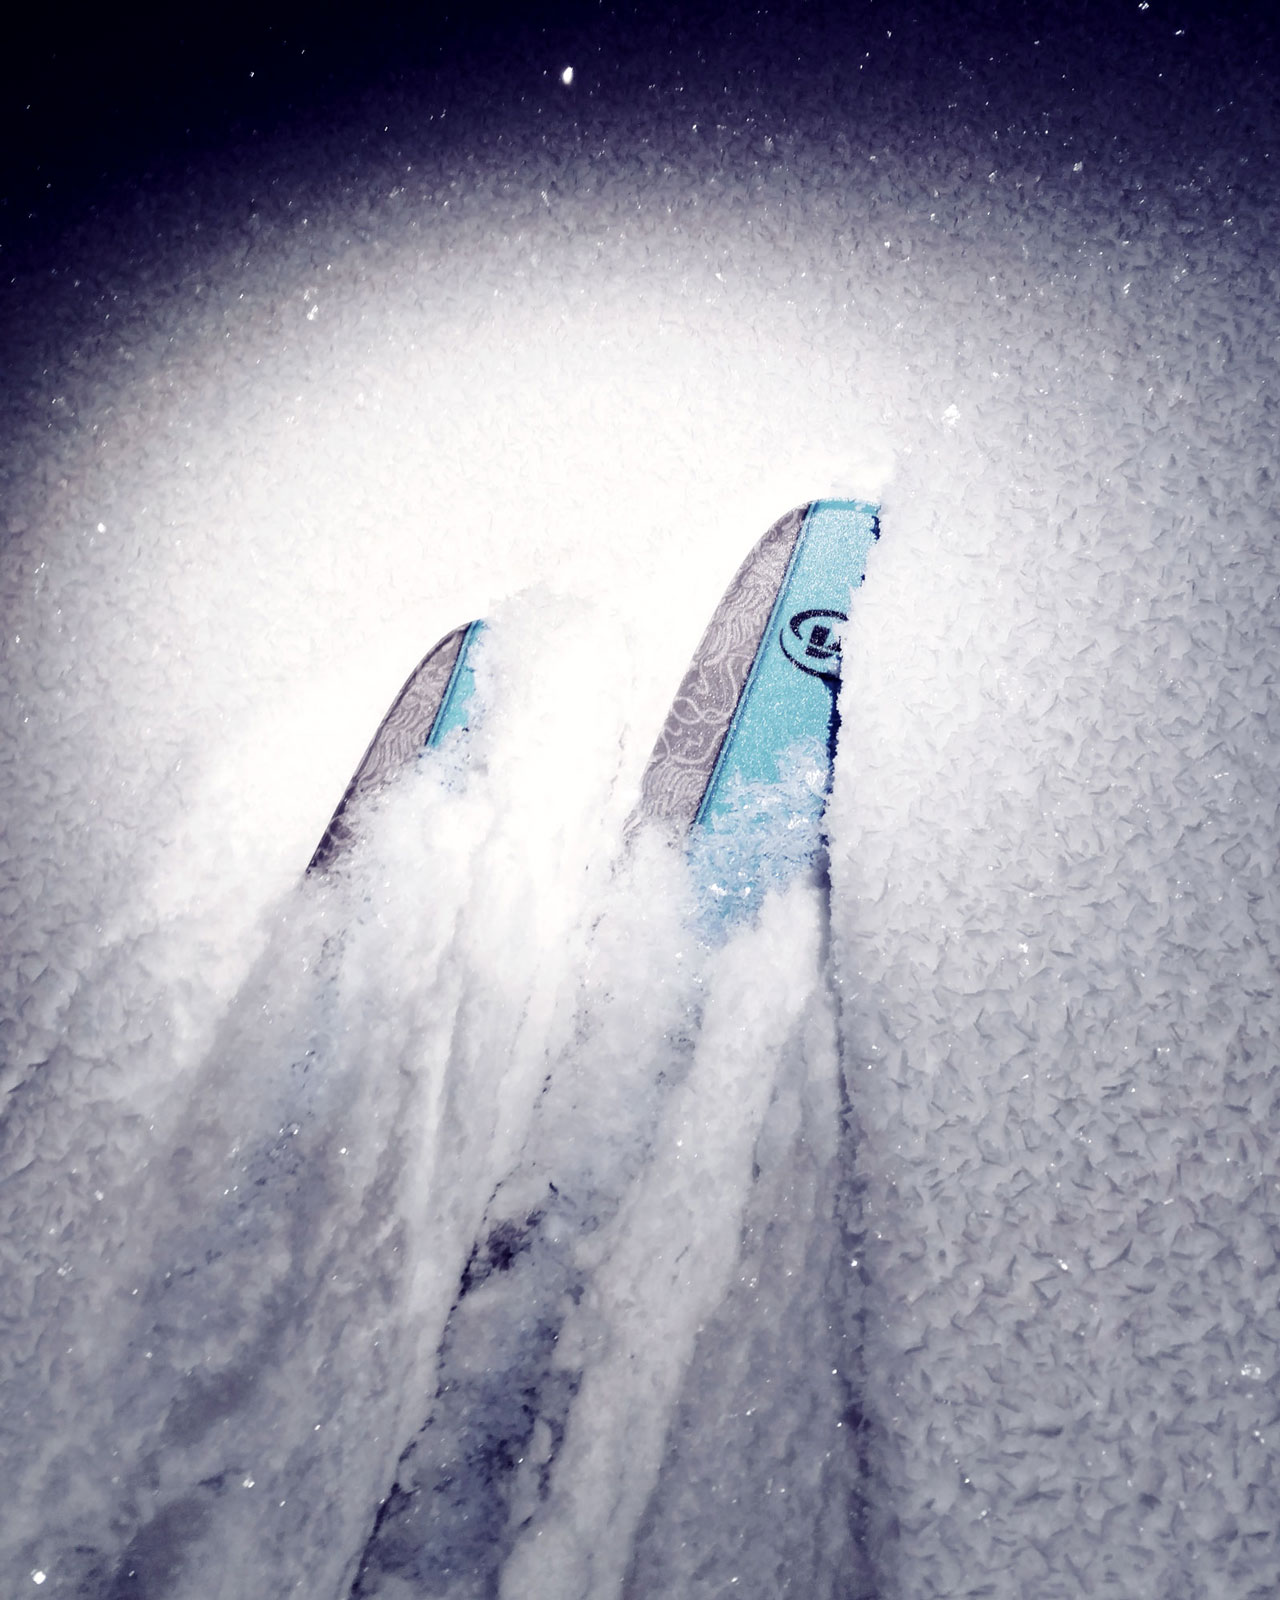 Voile X9 Skis.